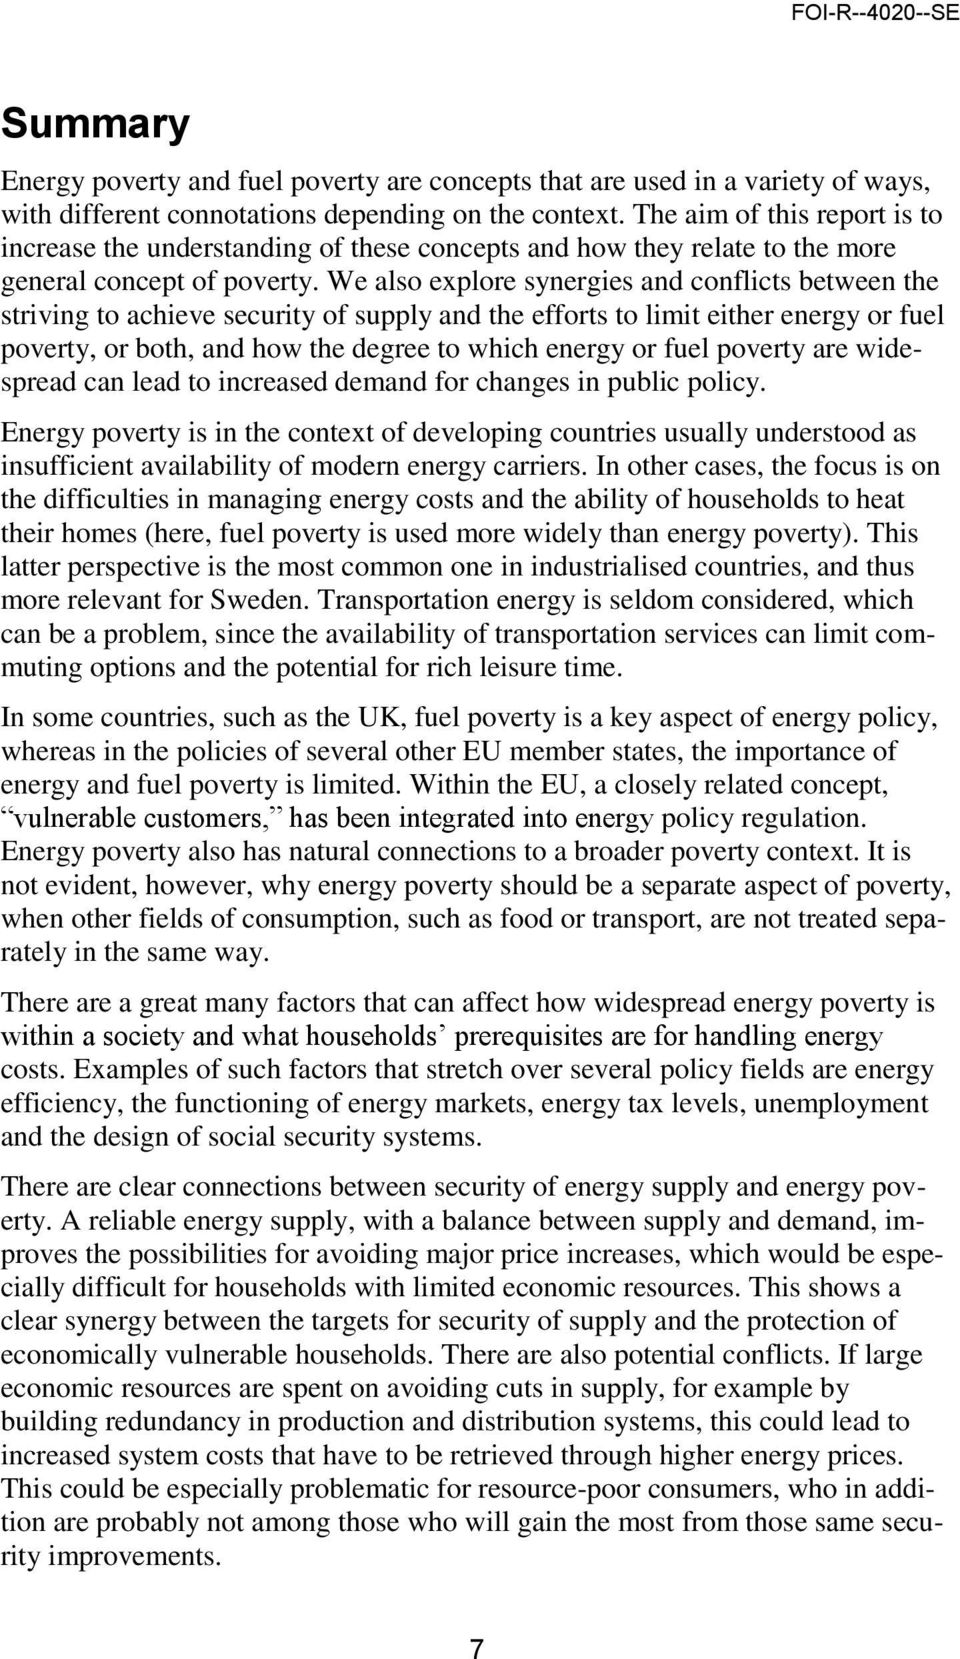 We also explore synergies and conflicts between the striving to achieve security of supply and the efforts to limit either energy or fuel poverty, or both, and how the degree to which energy or fuel